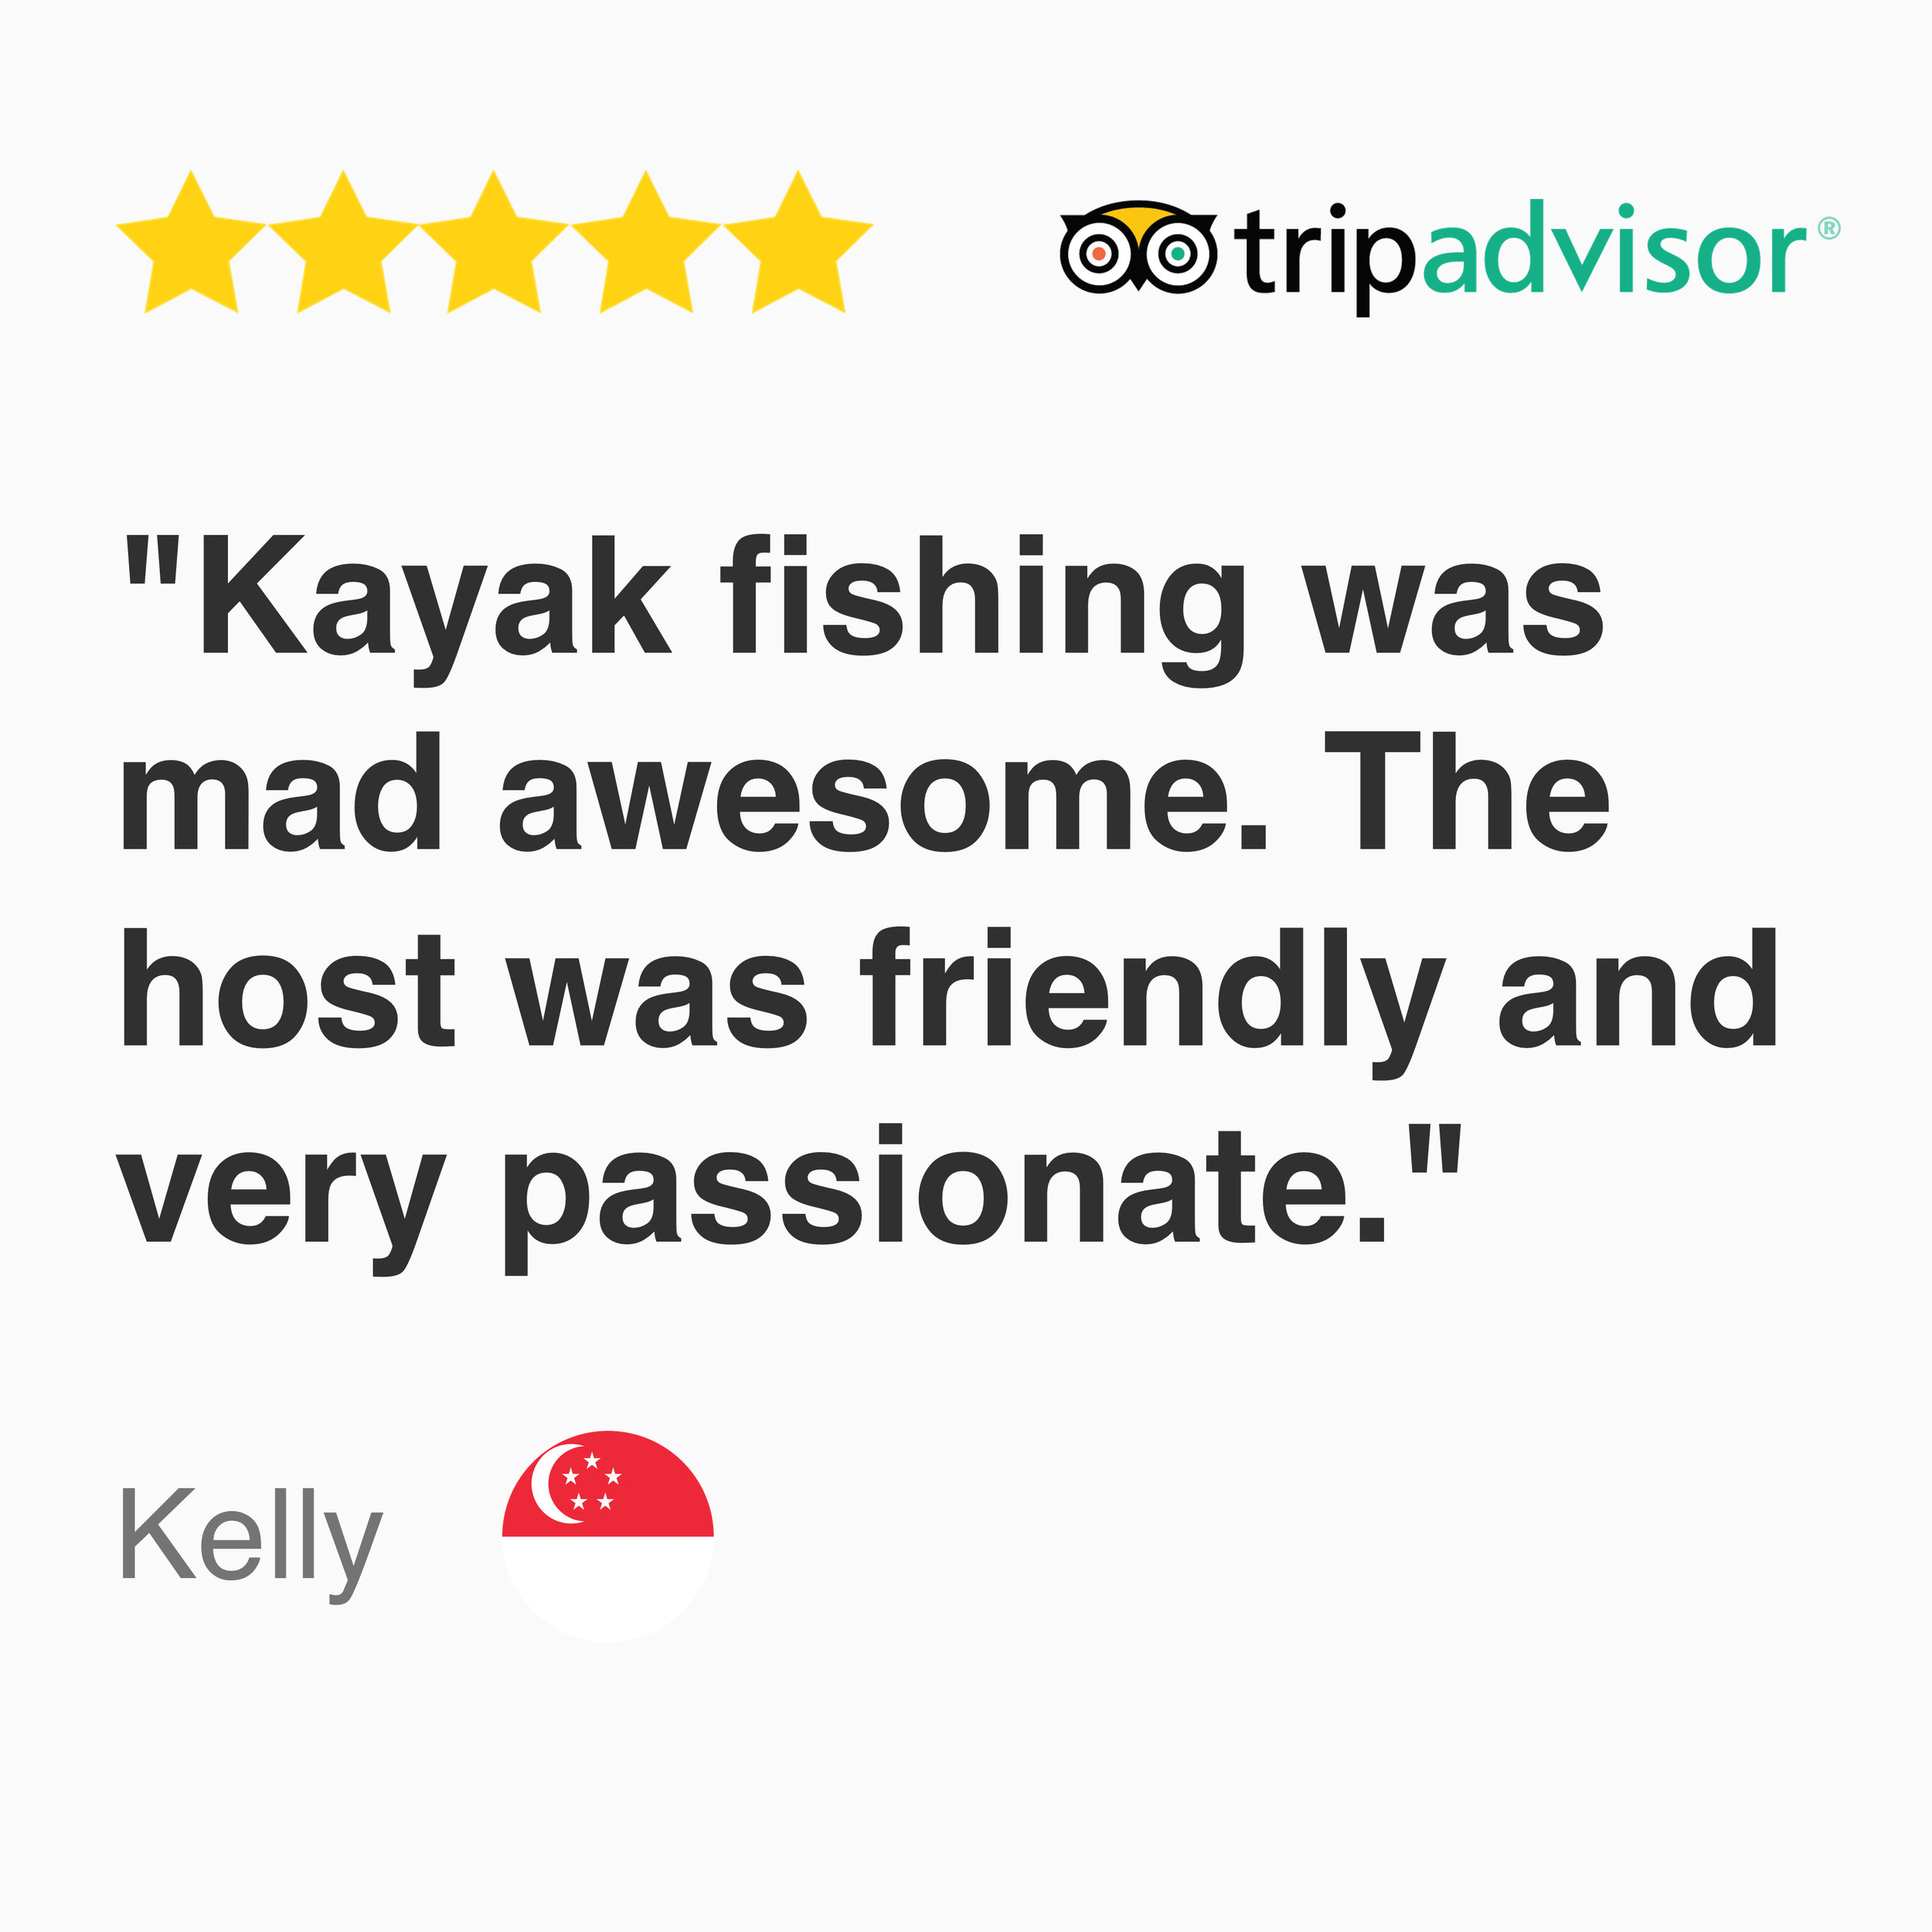 5 star Tripadvisor Revier for kayak fishing tour Singapore: Kayak fishing was mad awesome. The host was friendly and very passionate.